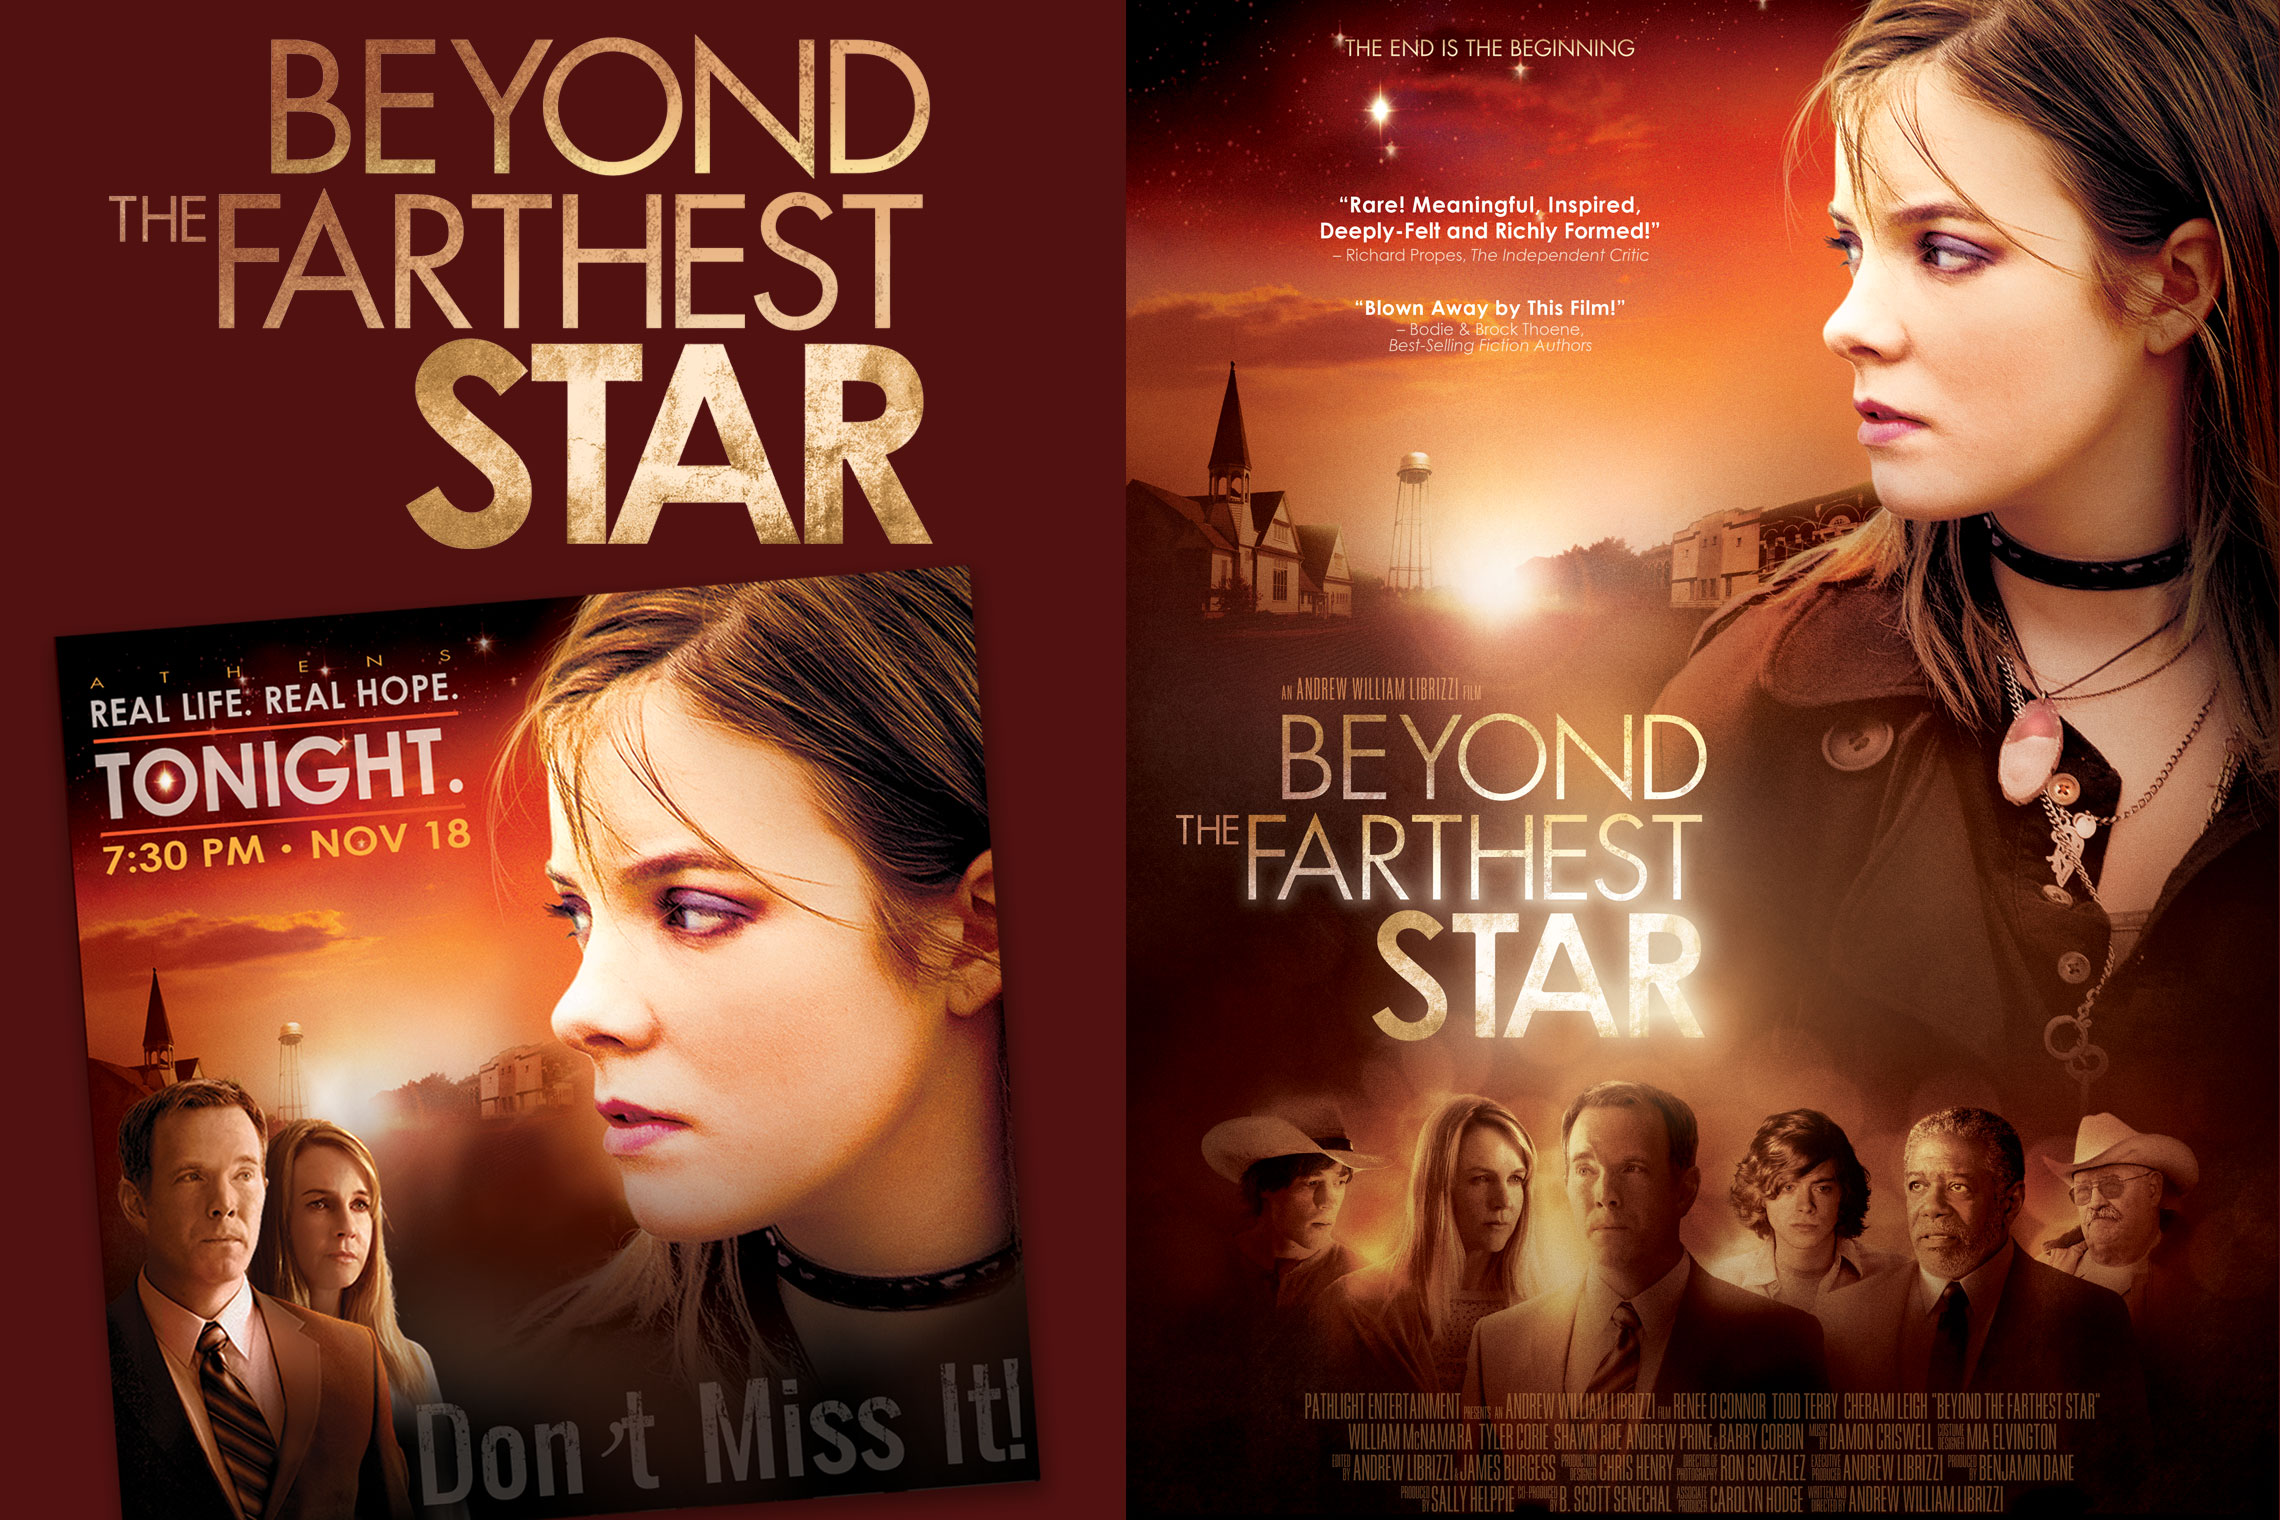 Beyond the Farthest Star Promo Card and Poster